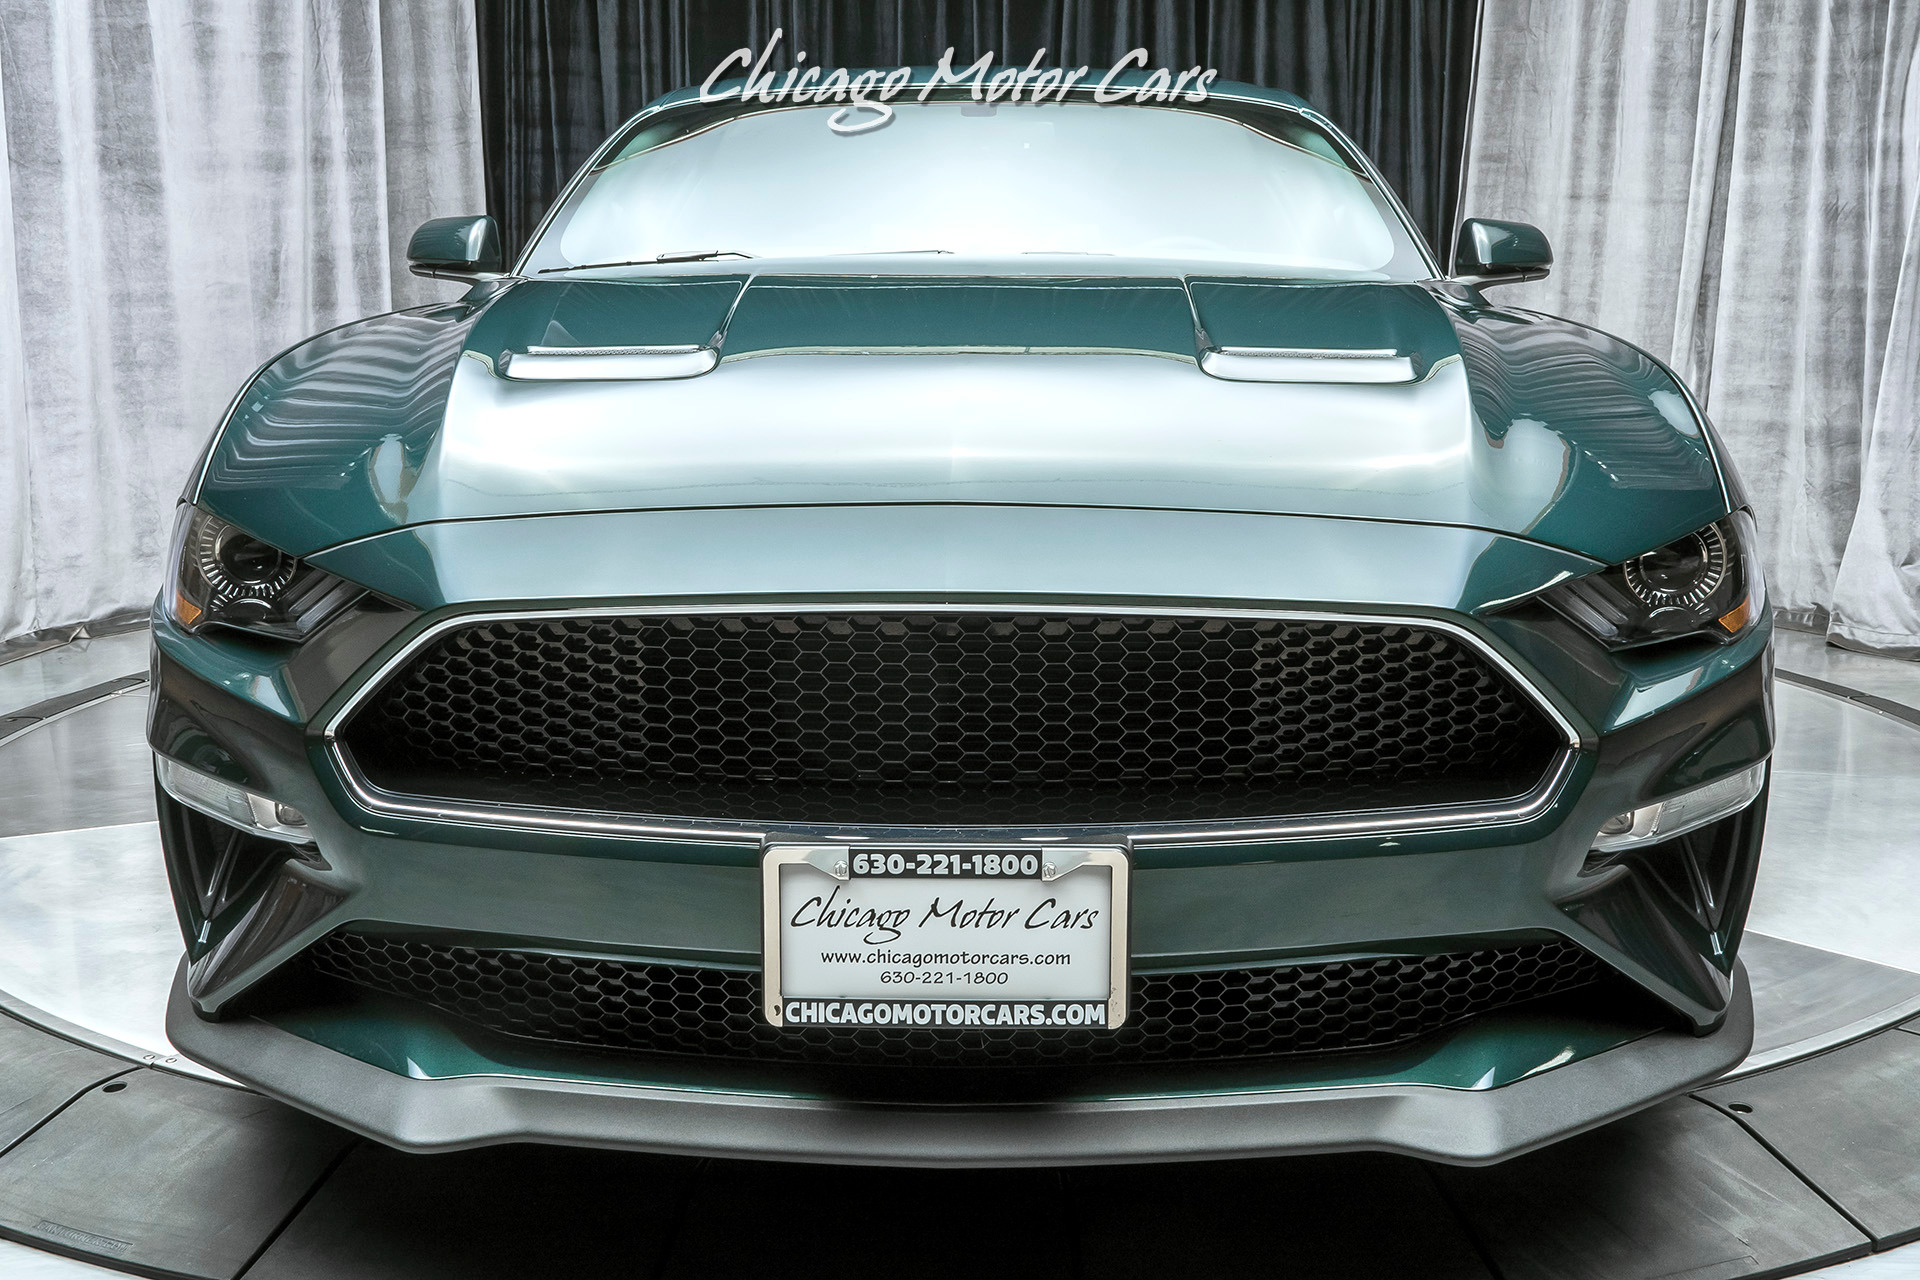 Used-2019-Ford-Mustang-BULLITT-Magnetic-Ride-and-Electronics-Pkg-480HP-ONE-OWNER